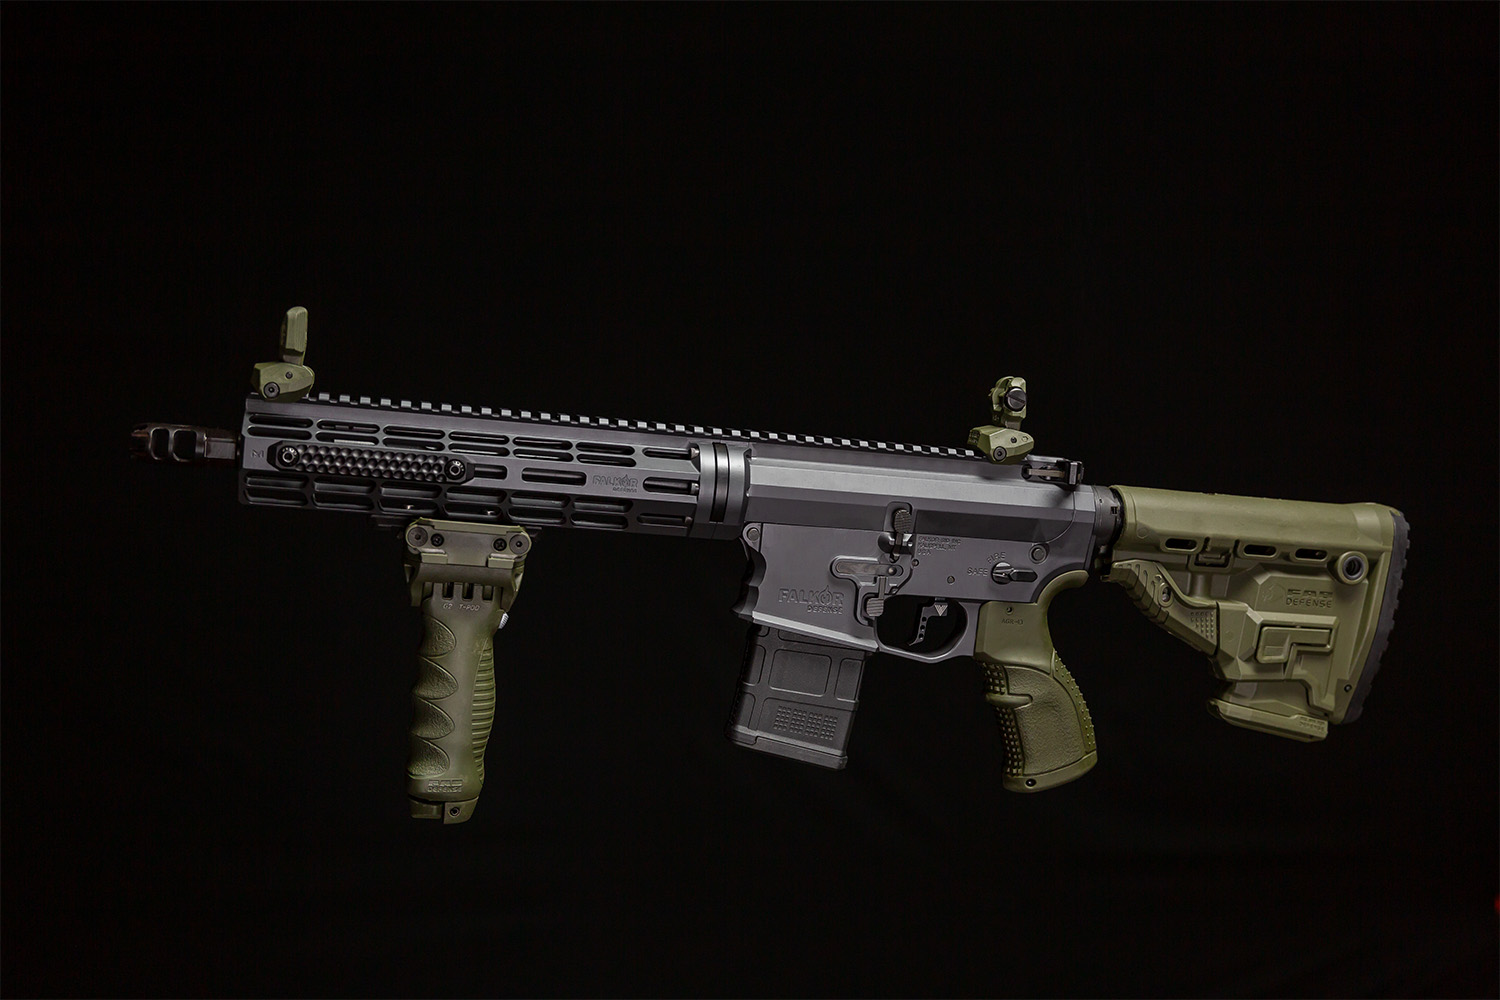 The GL Core-M stock in OD Green shown installed on a rifle, along with some of the company's other products.